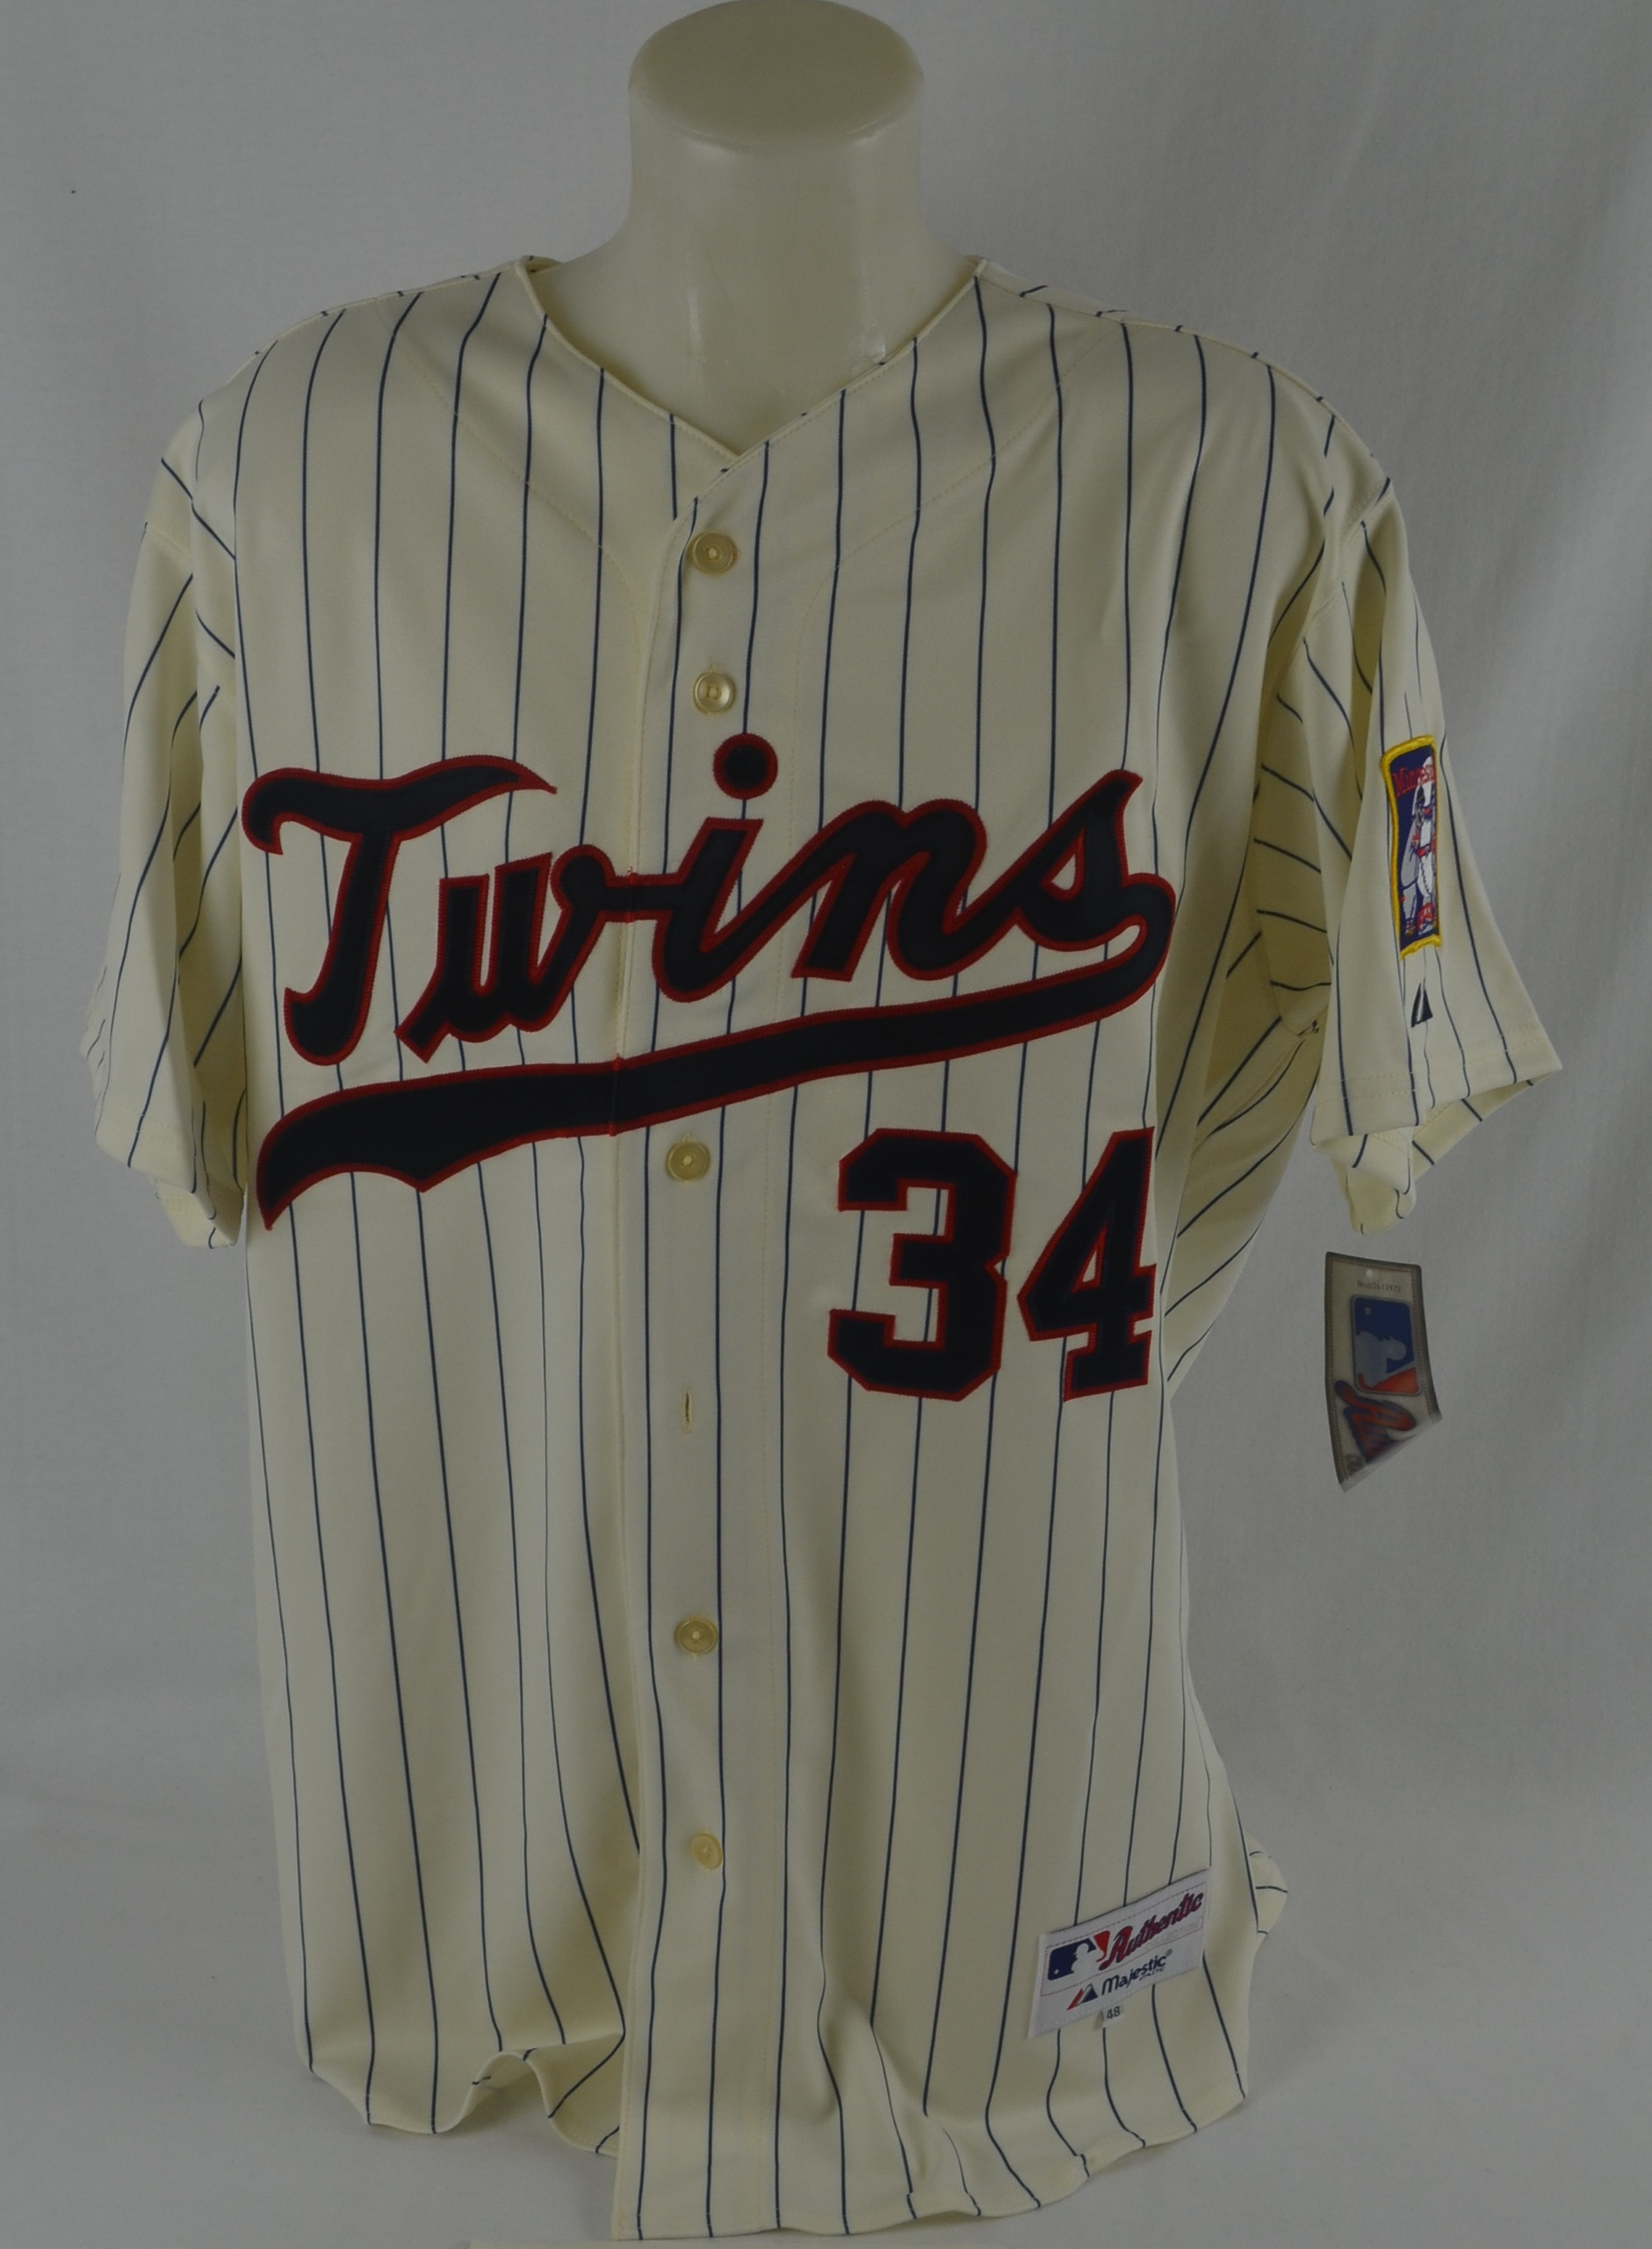 d66c1814400 Lot Detail - Kirby Puckett Autographed 1987 World Series Throwback ...